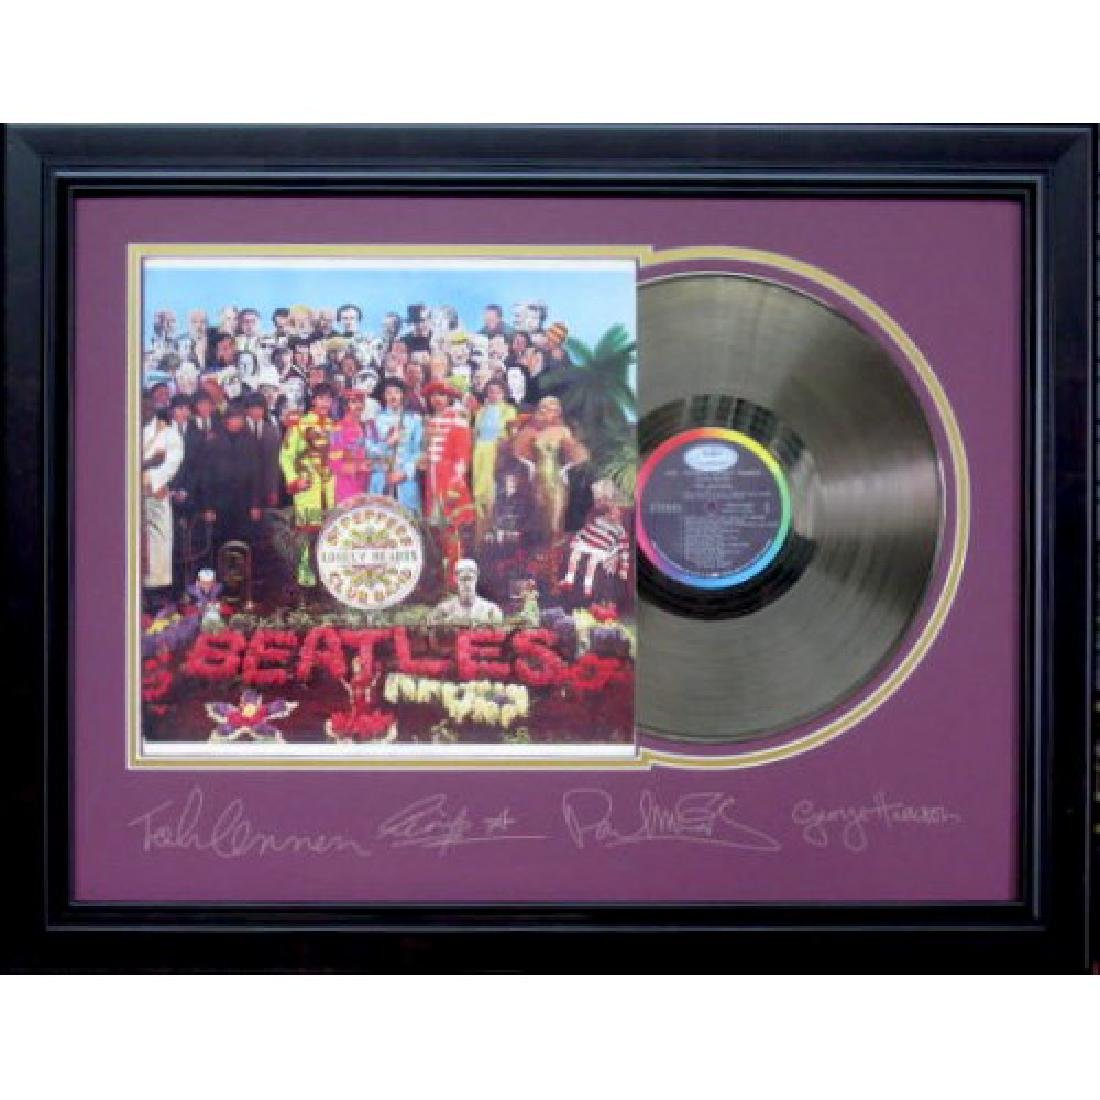 Beatles Gold Album - Plate Signatures